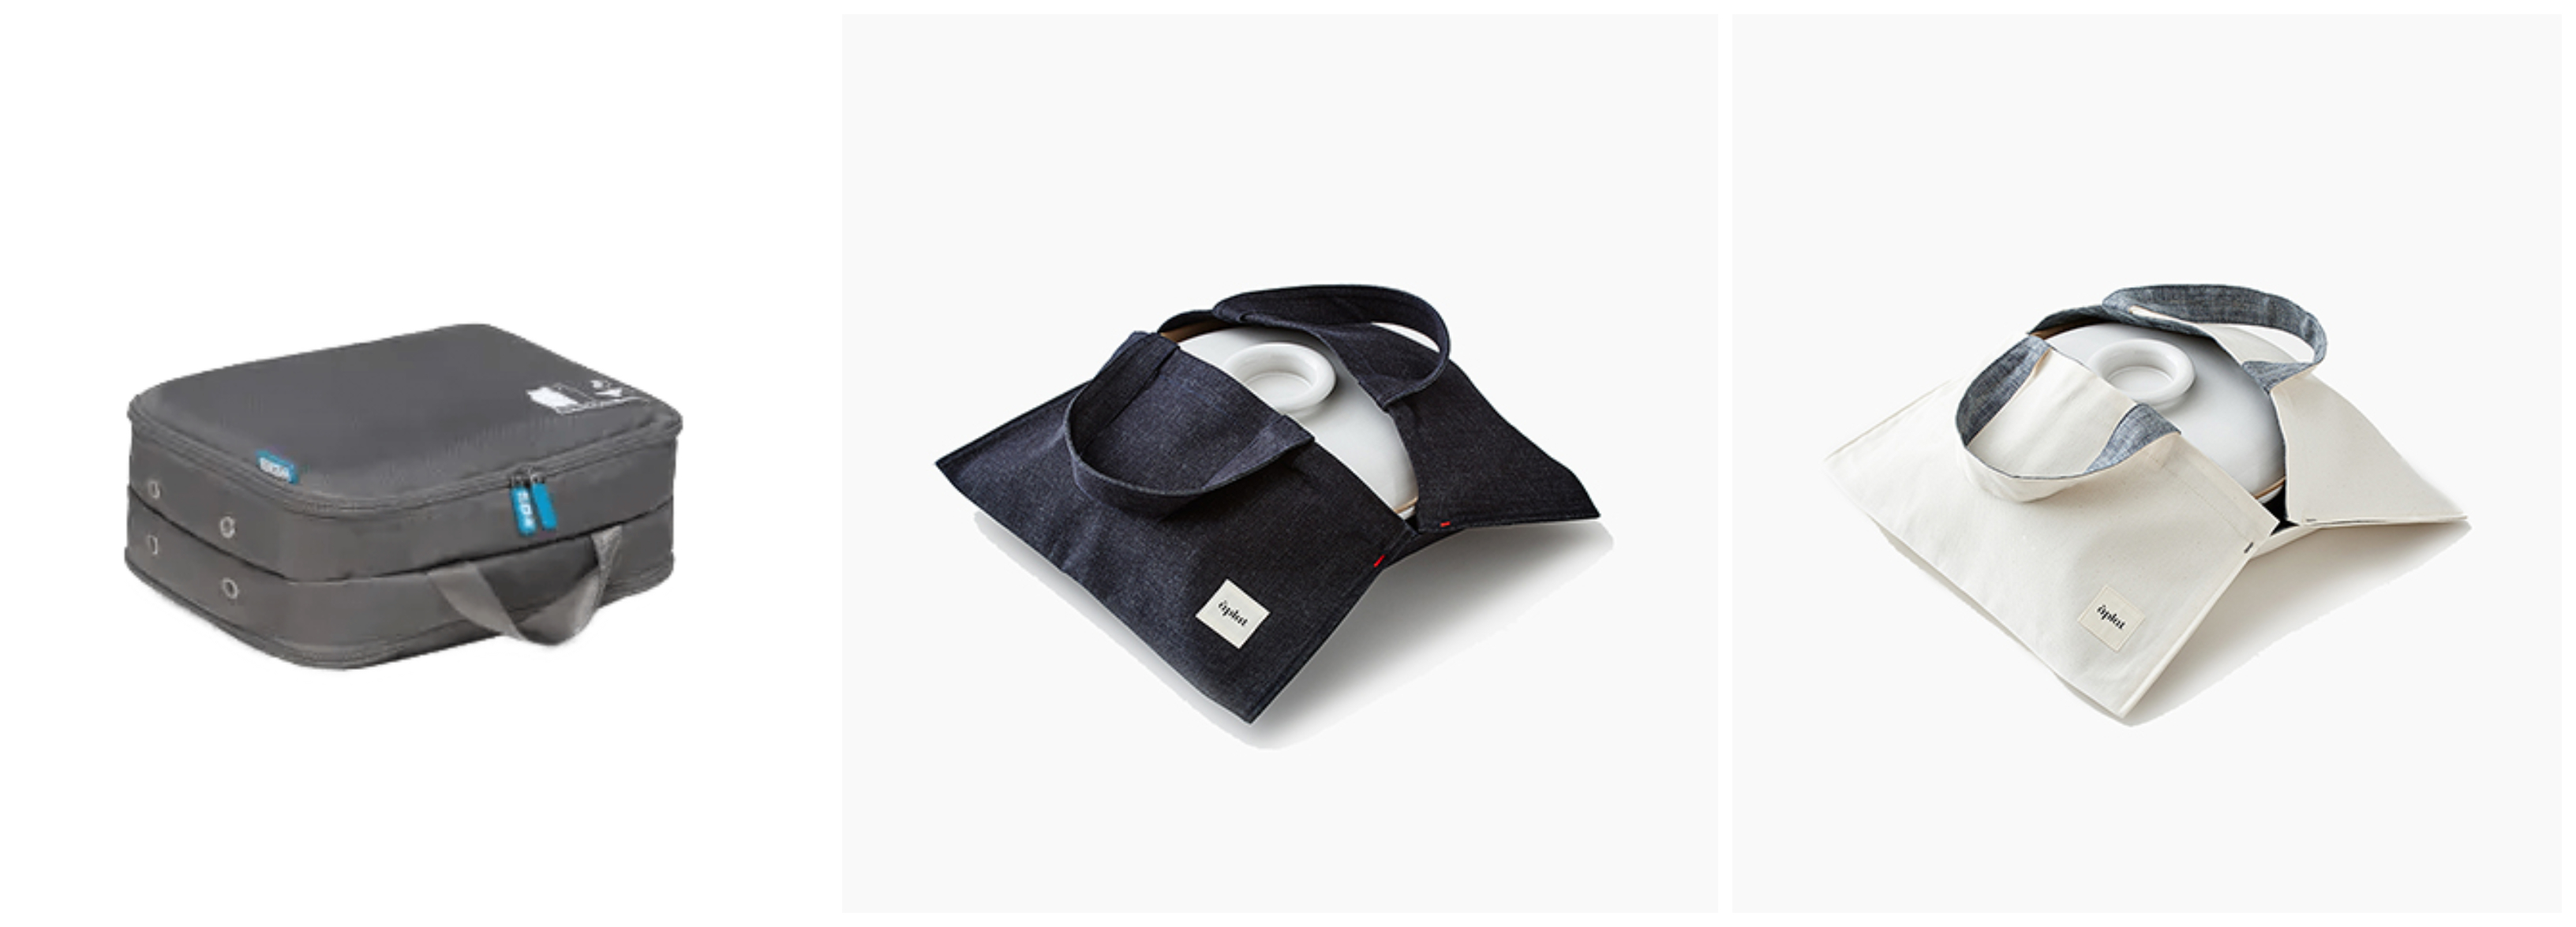 Flight 001 Spacepak Small, Aplay Culinary Tote Denim, Aplat Plat Culinary Tote Cotton